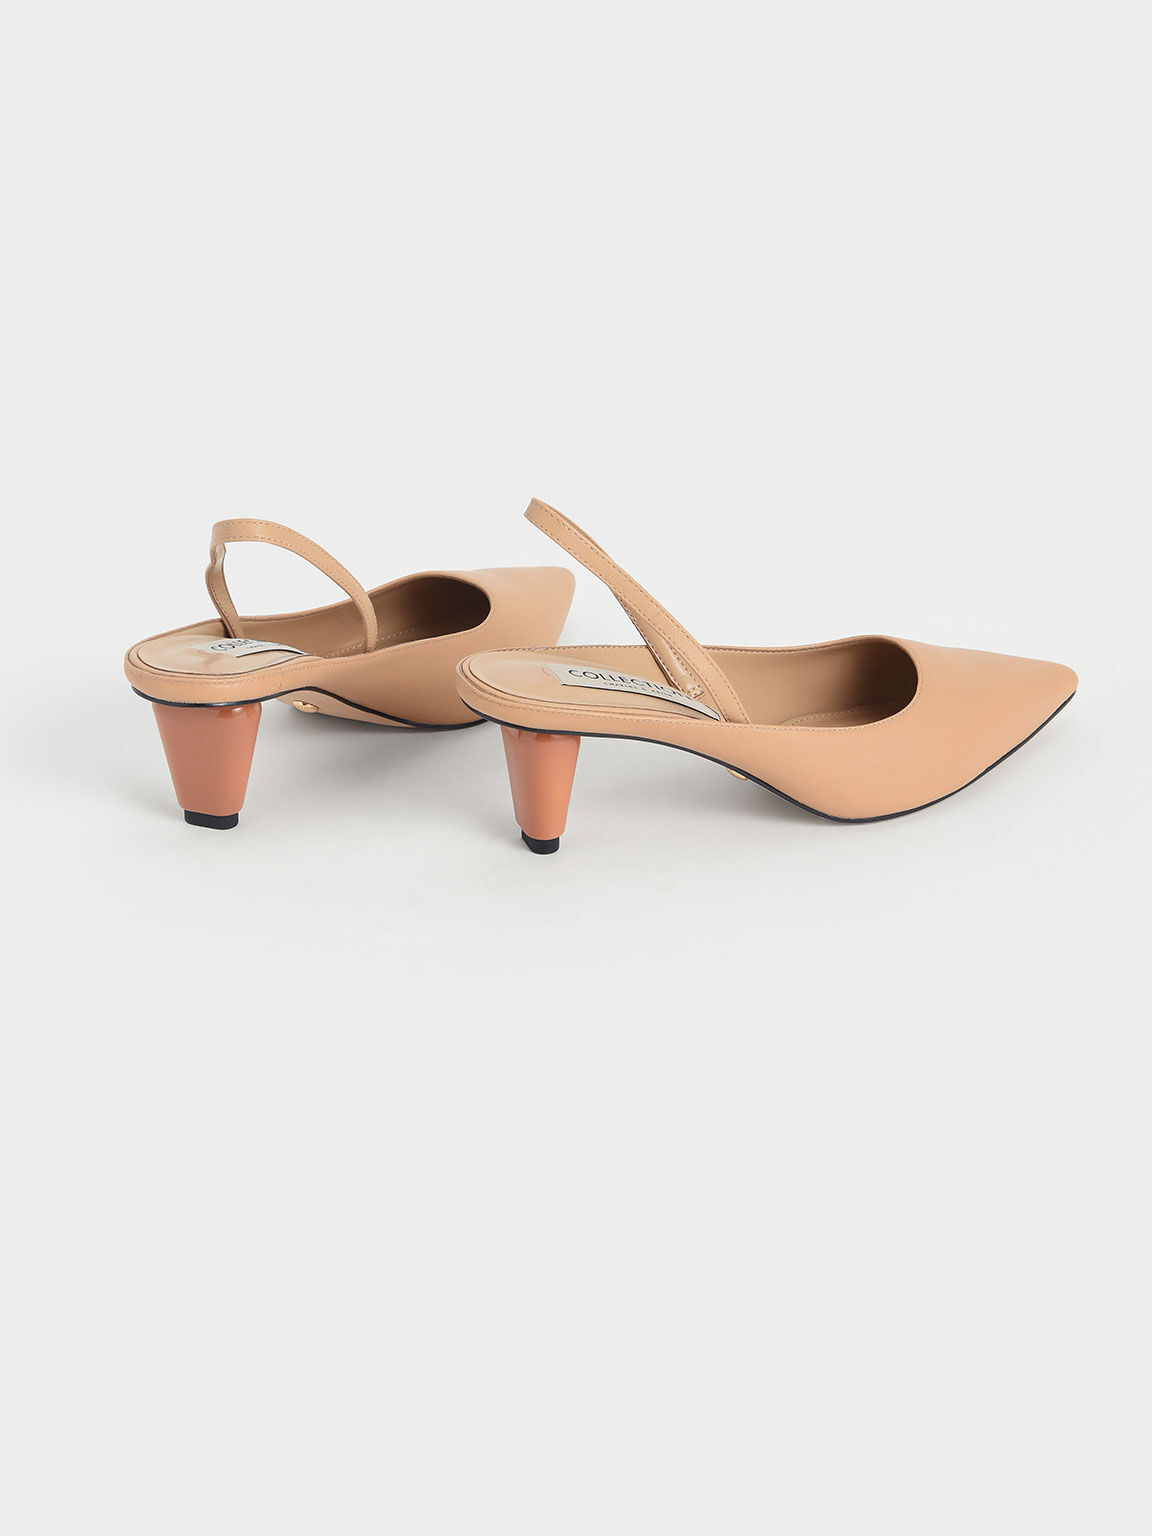 Leather Sculptural Heel Slingback Pumps, Nude, hi-res